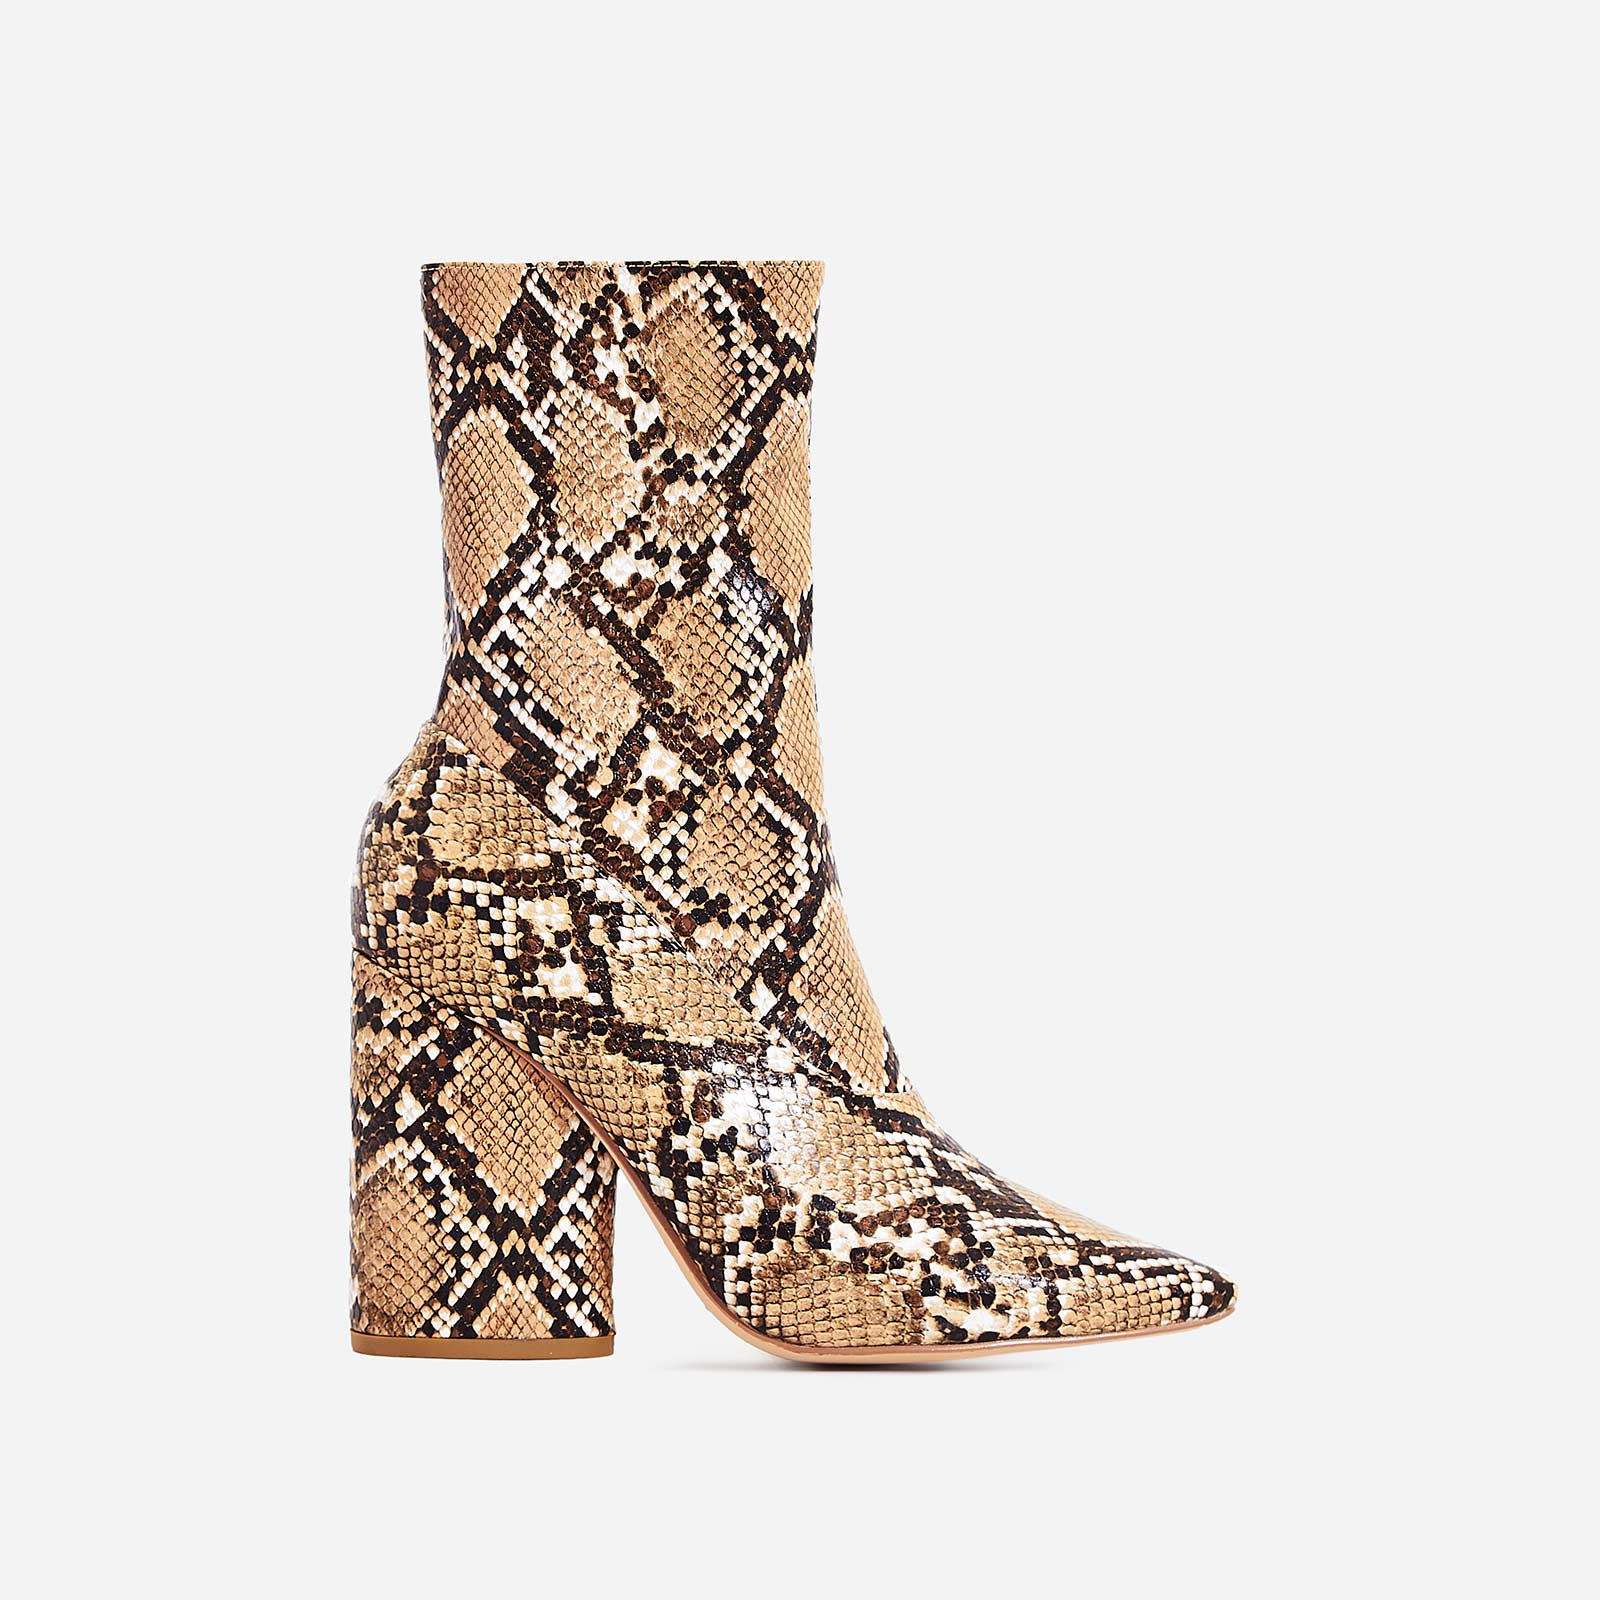 98b484b6f01 Ameera Block Heel Pointed Ankle Boot In Nude Snake Print Faux Leather